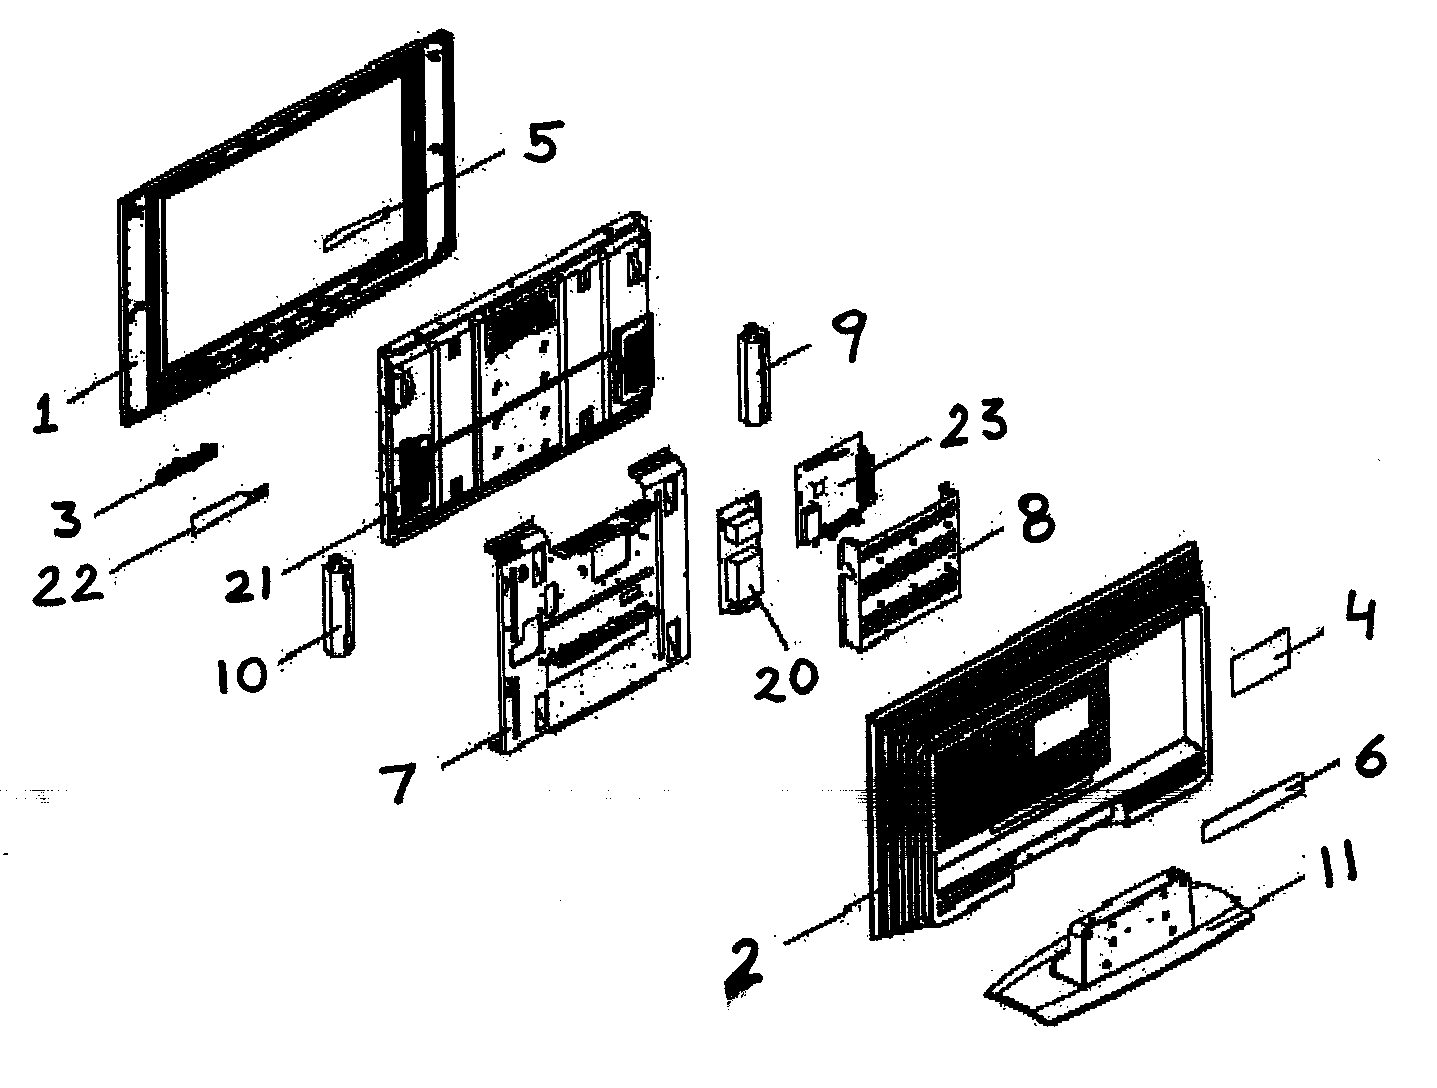 Olevia model 232-S13 lcd television genuine parts